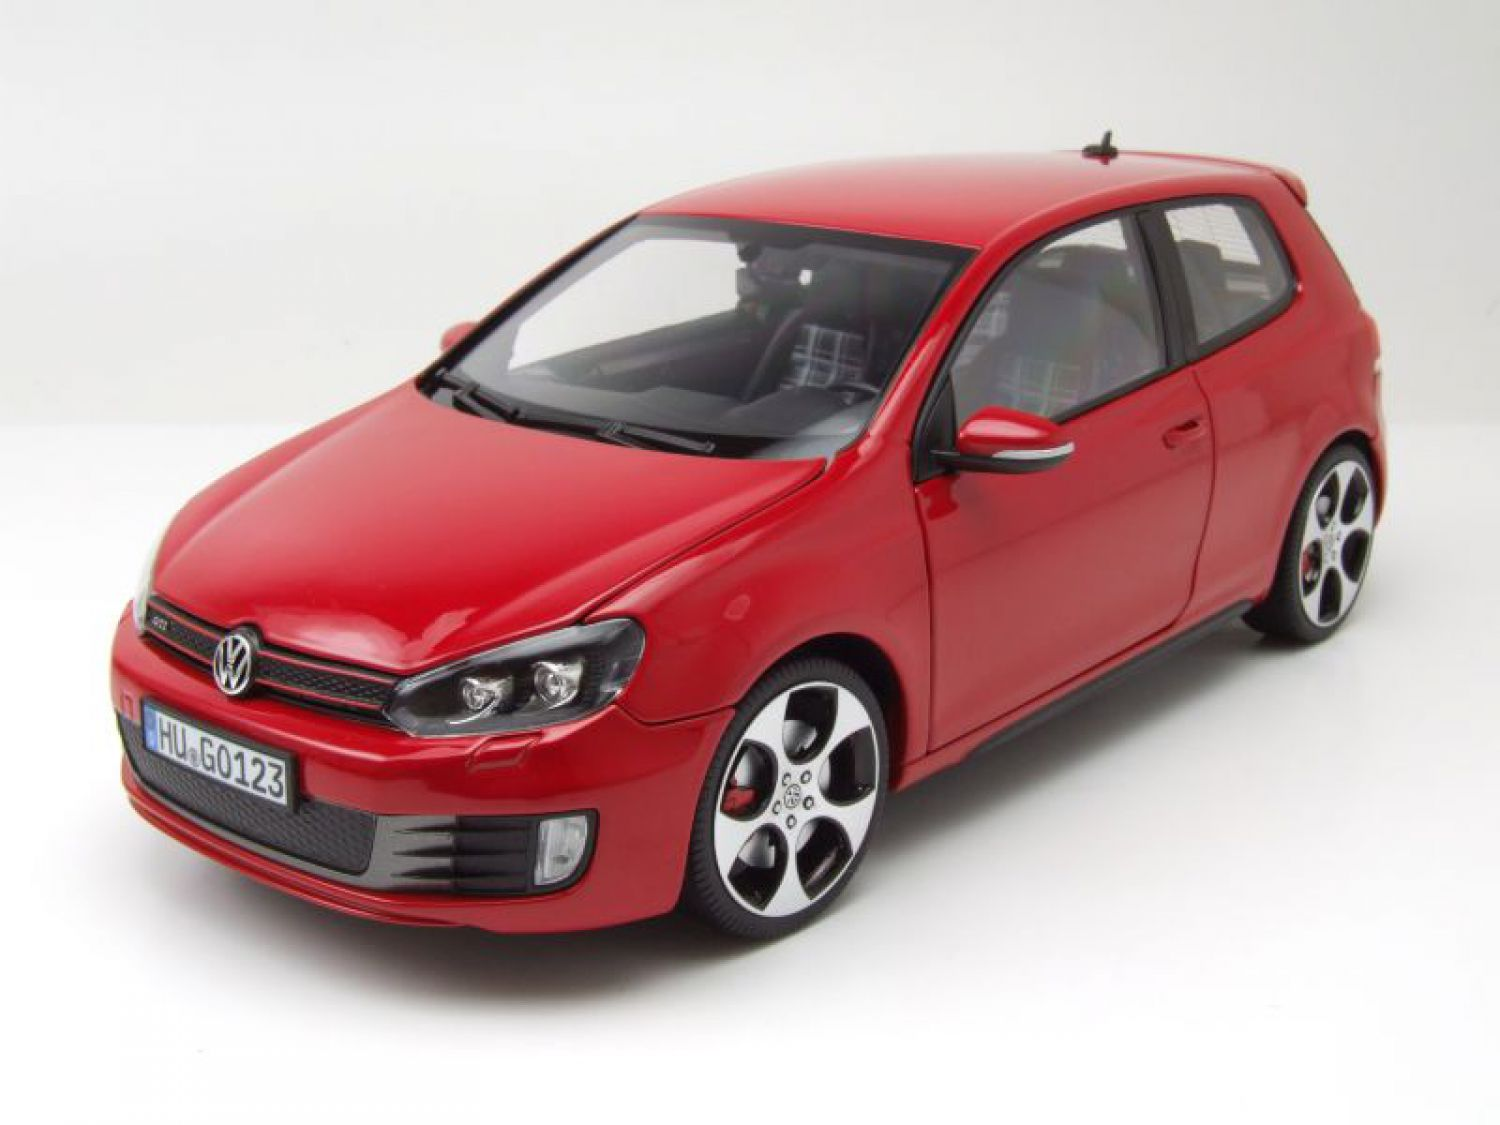 vw golf 6 gti 2009 rot modellauto 1 18 norev ebay. Black Bedroom Furniture Sets. Home Design Ideas